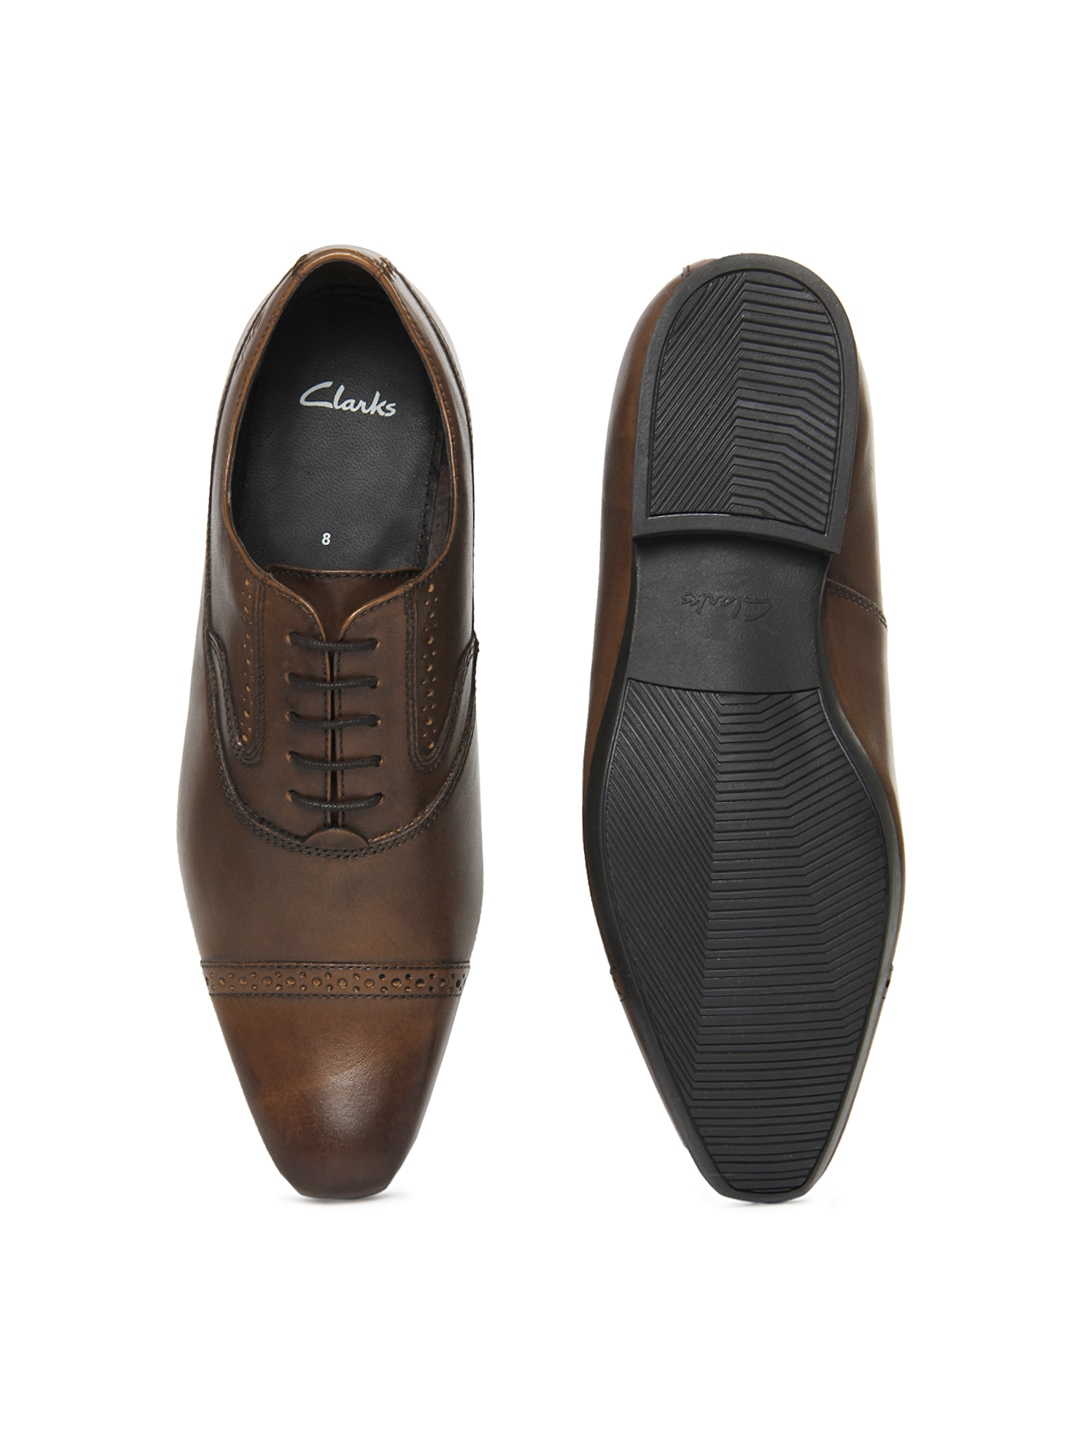 adidas semi formal shoes images